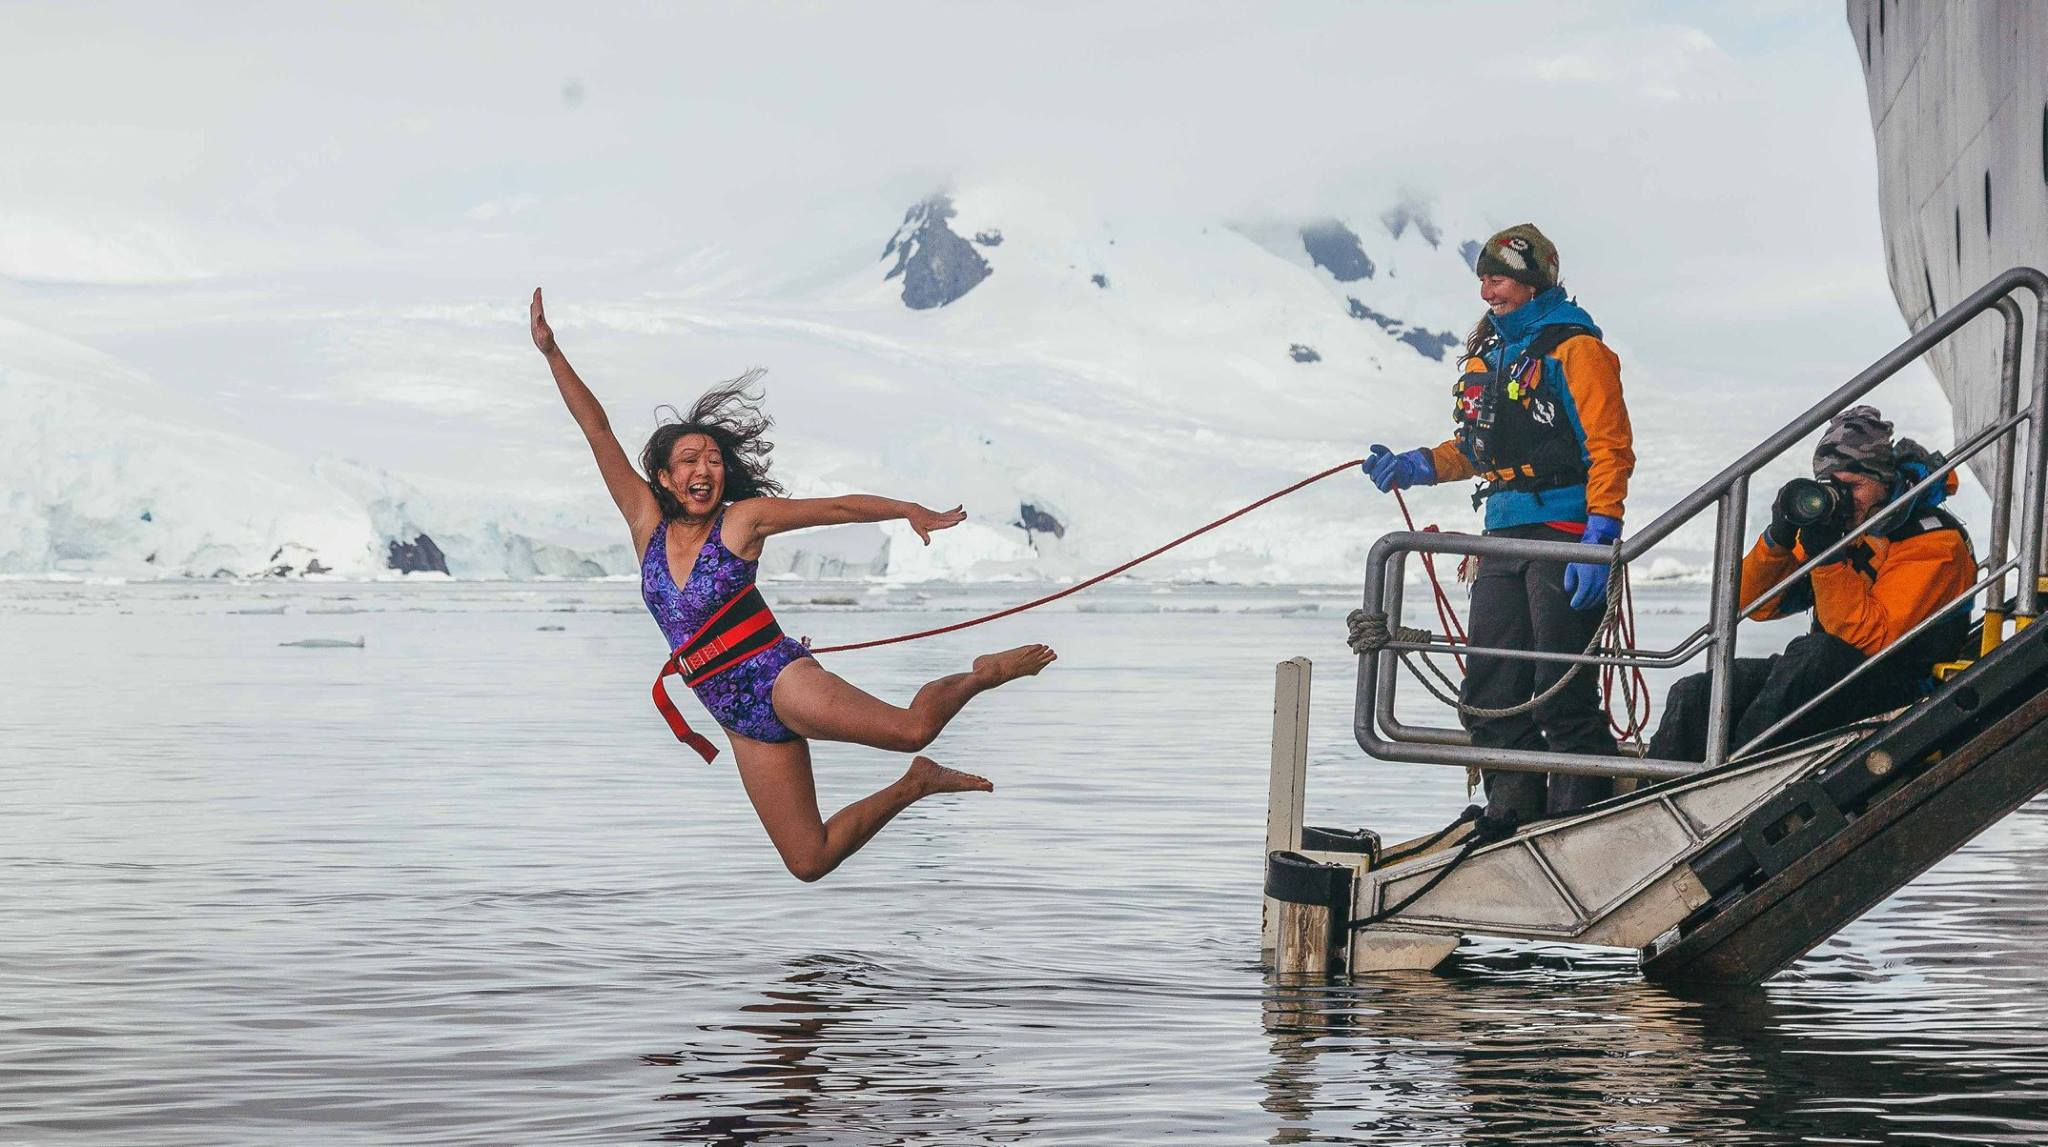 May Lee soars off the gangplank into an icy Antarctic bay during the Polar Plunge, a popular rite of passage on polar expeditions